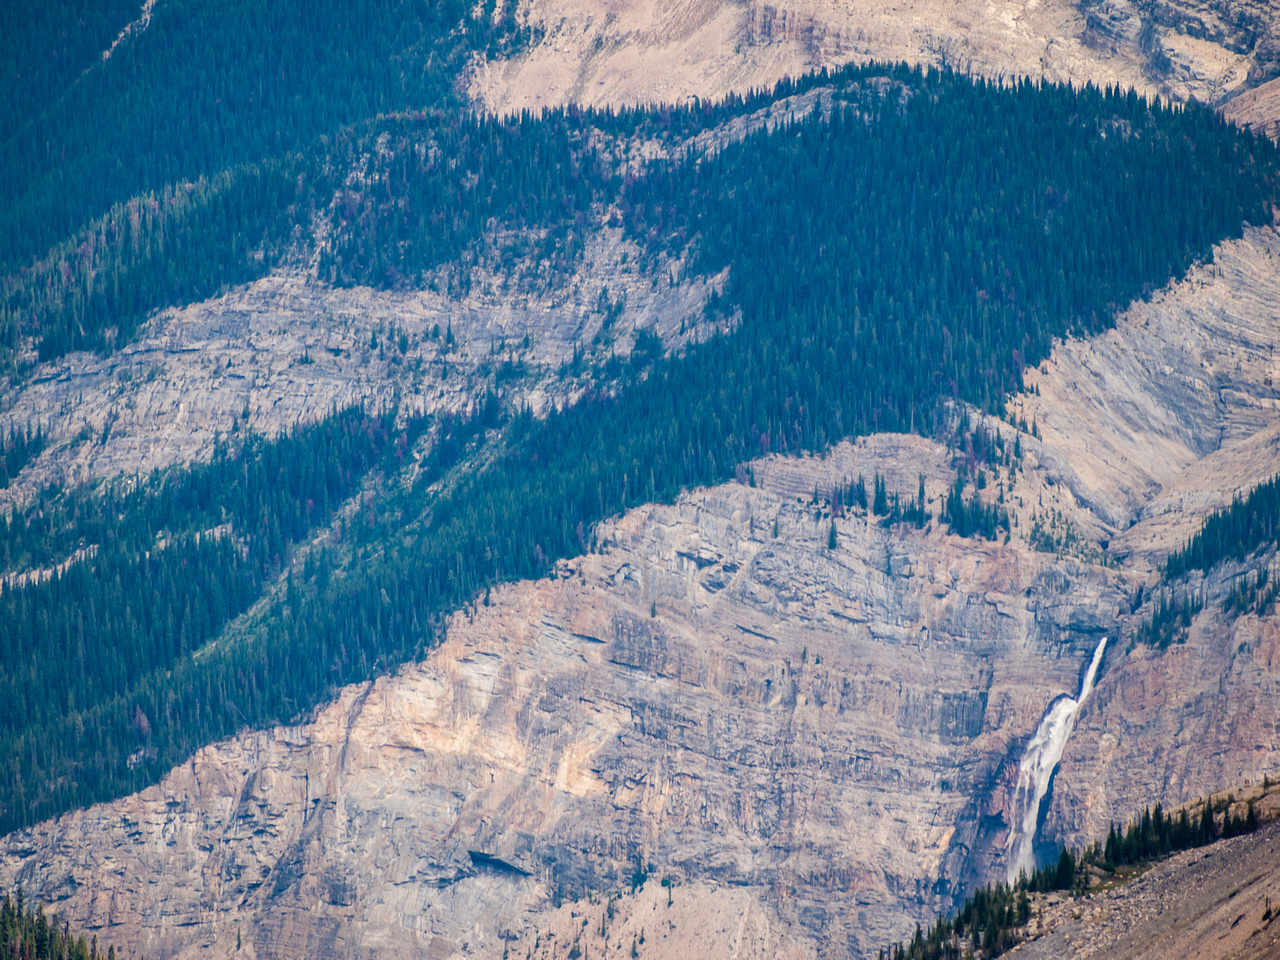 Hard to believe you can see Takkakkaw Falls from here!